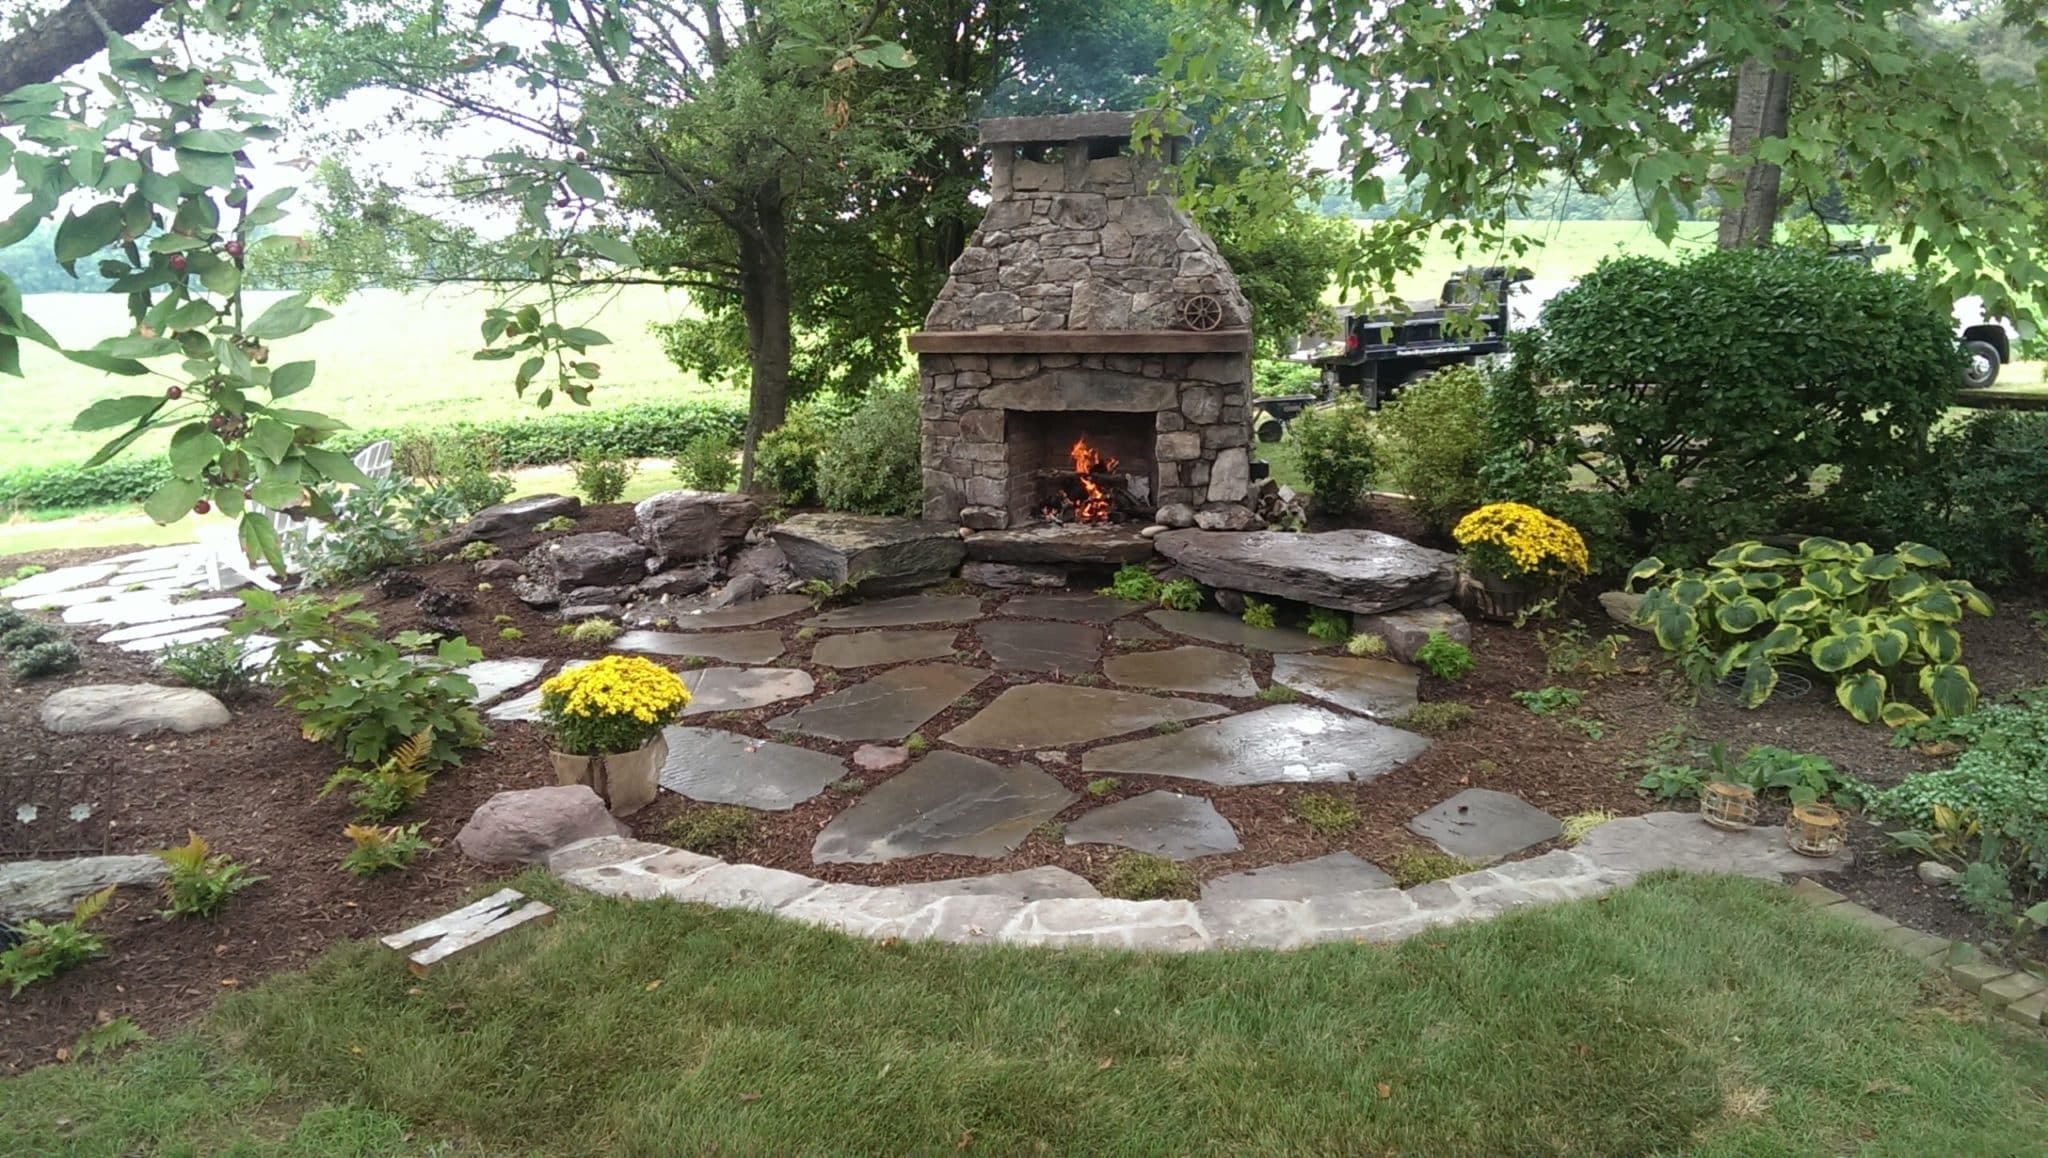 353 Stone Fireplace and Sitting Boulders